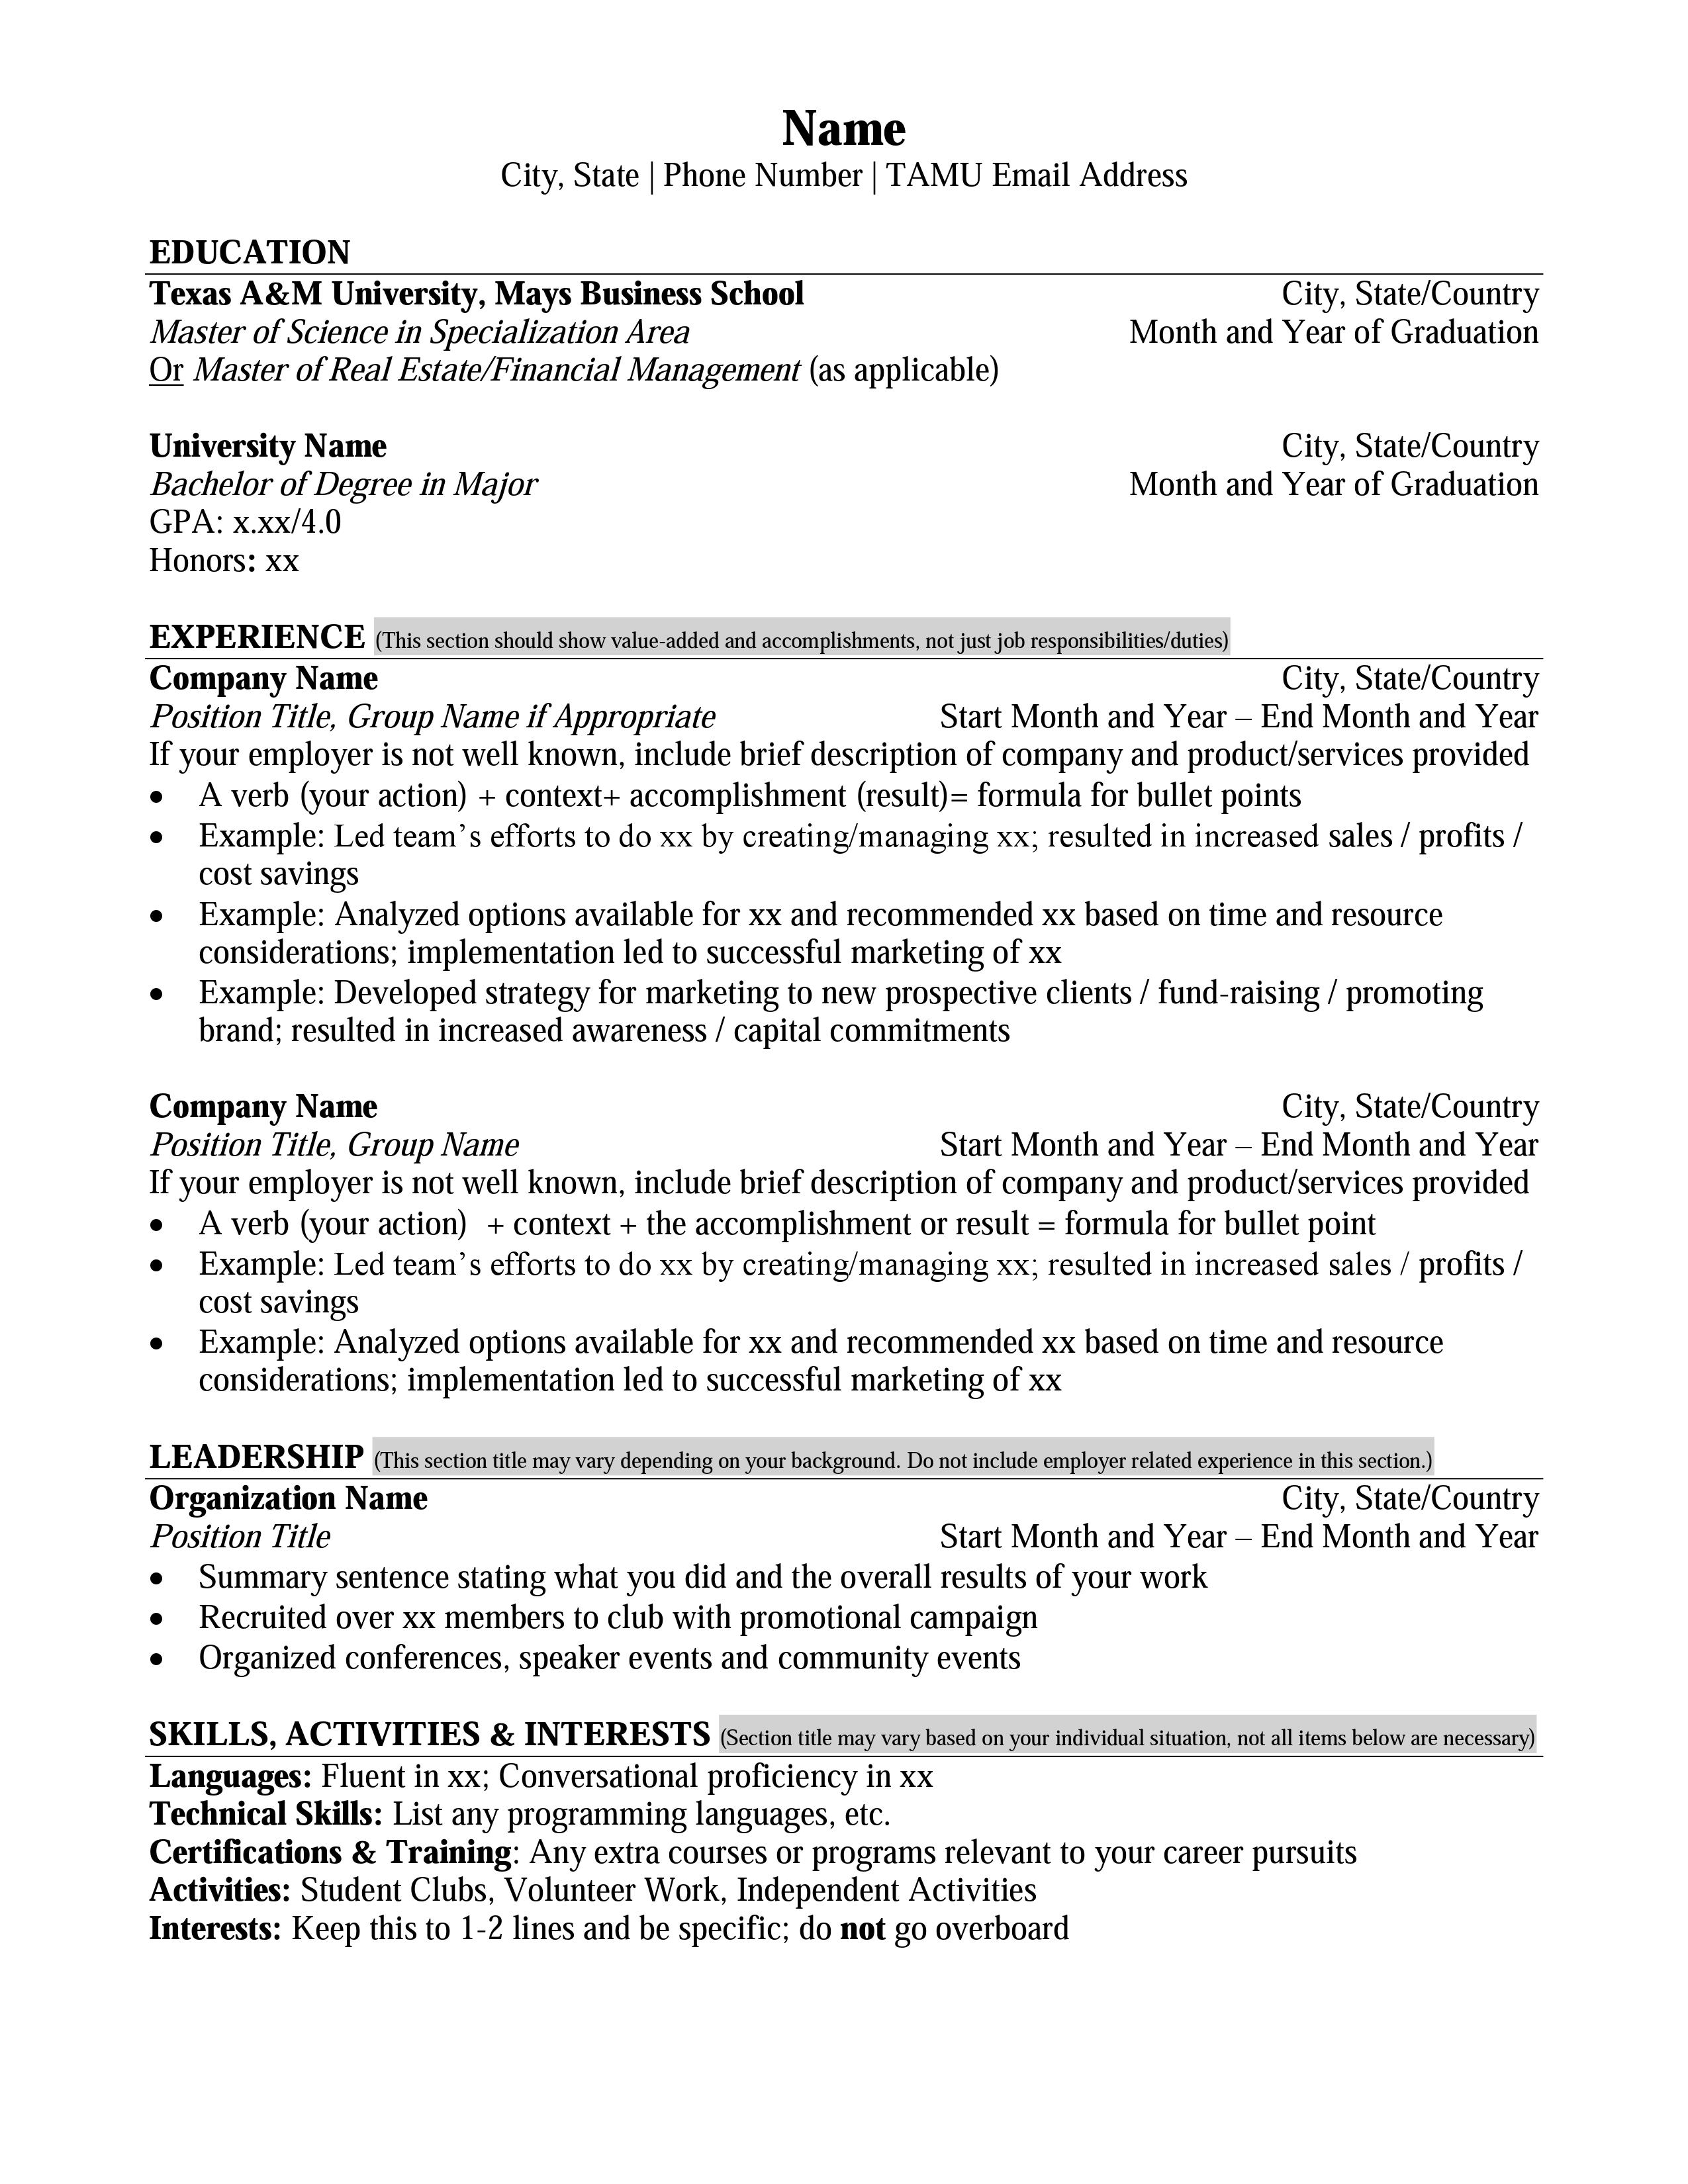 Appealing formula for wonderful business administration resume. Mays Masters Resume Format Career Management Center Mays Business School